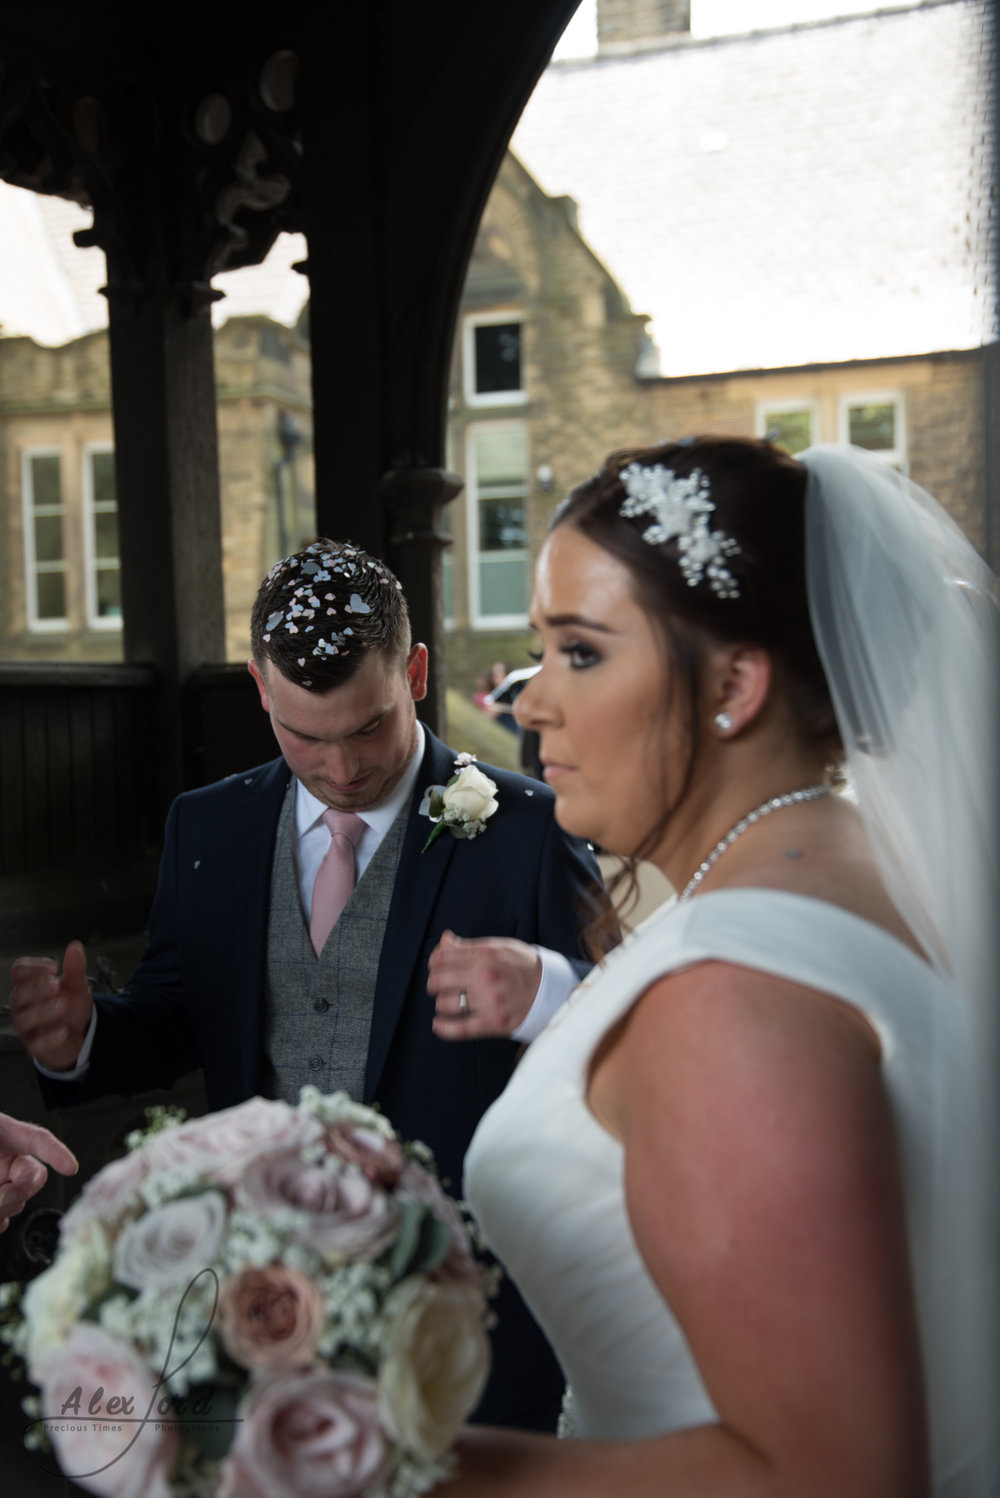 The bride and groom stand under and archway at the entrance to the church yard and wait for their guests to assemble for the confetti shot